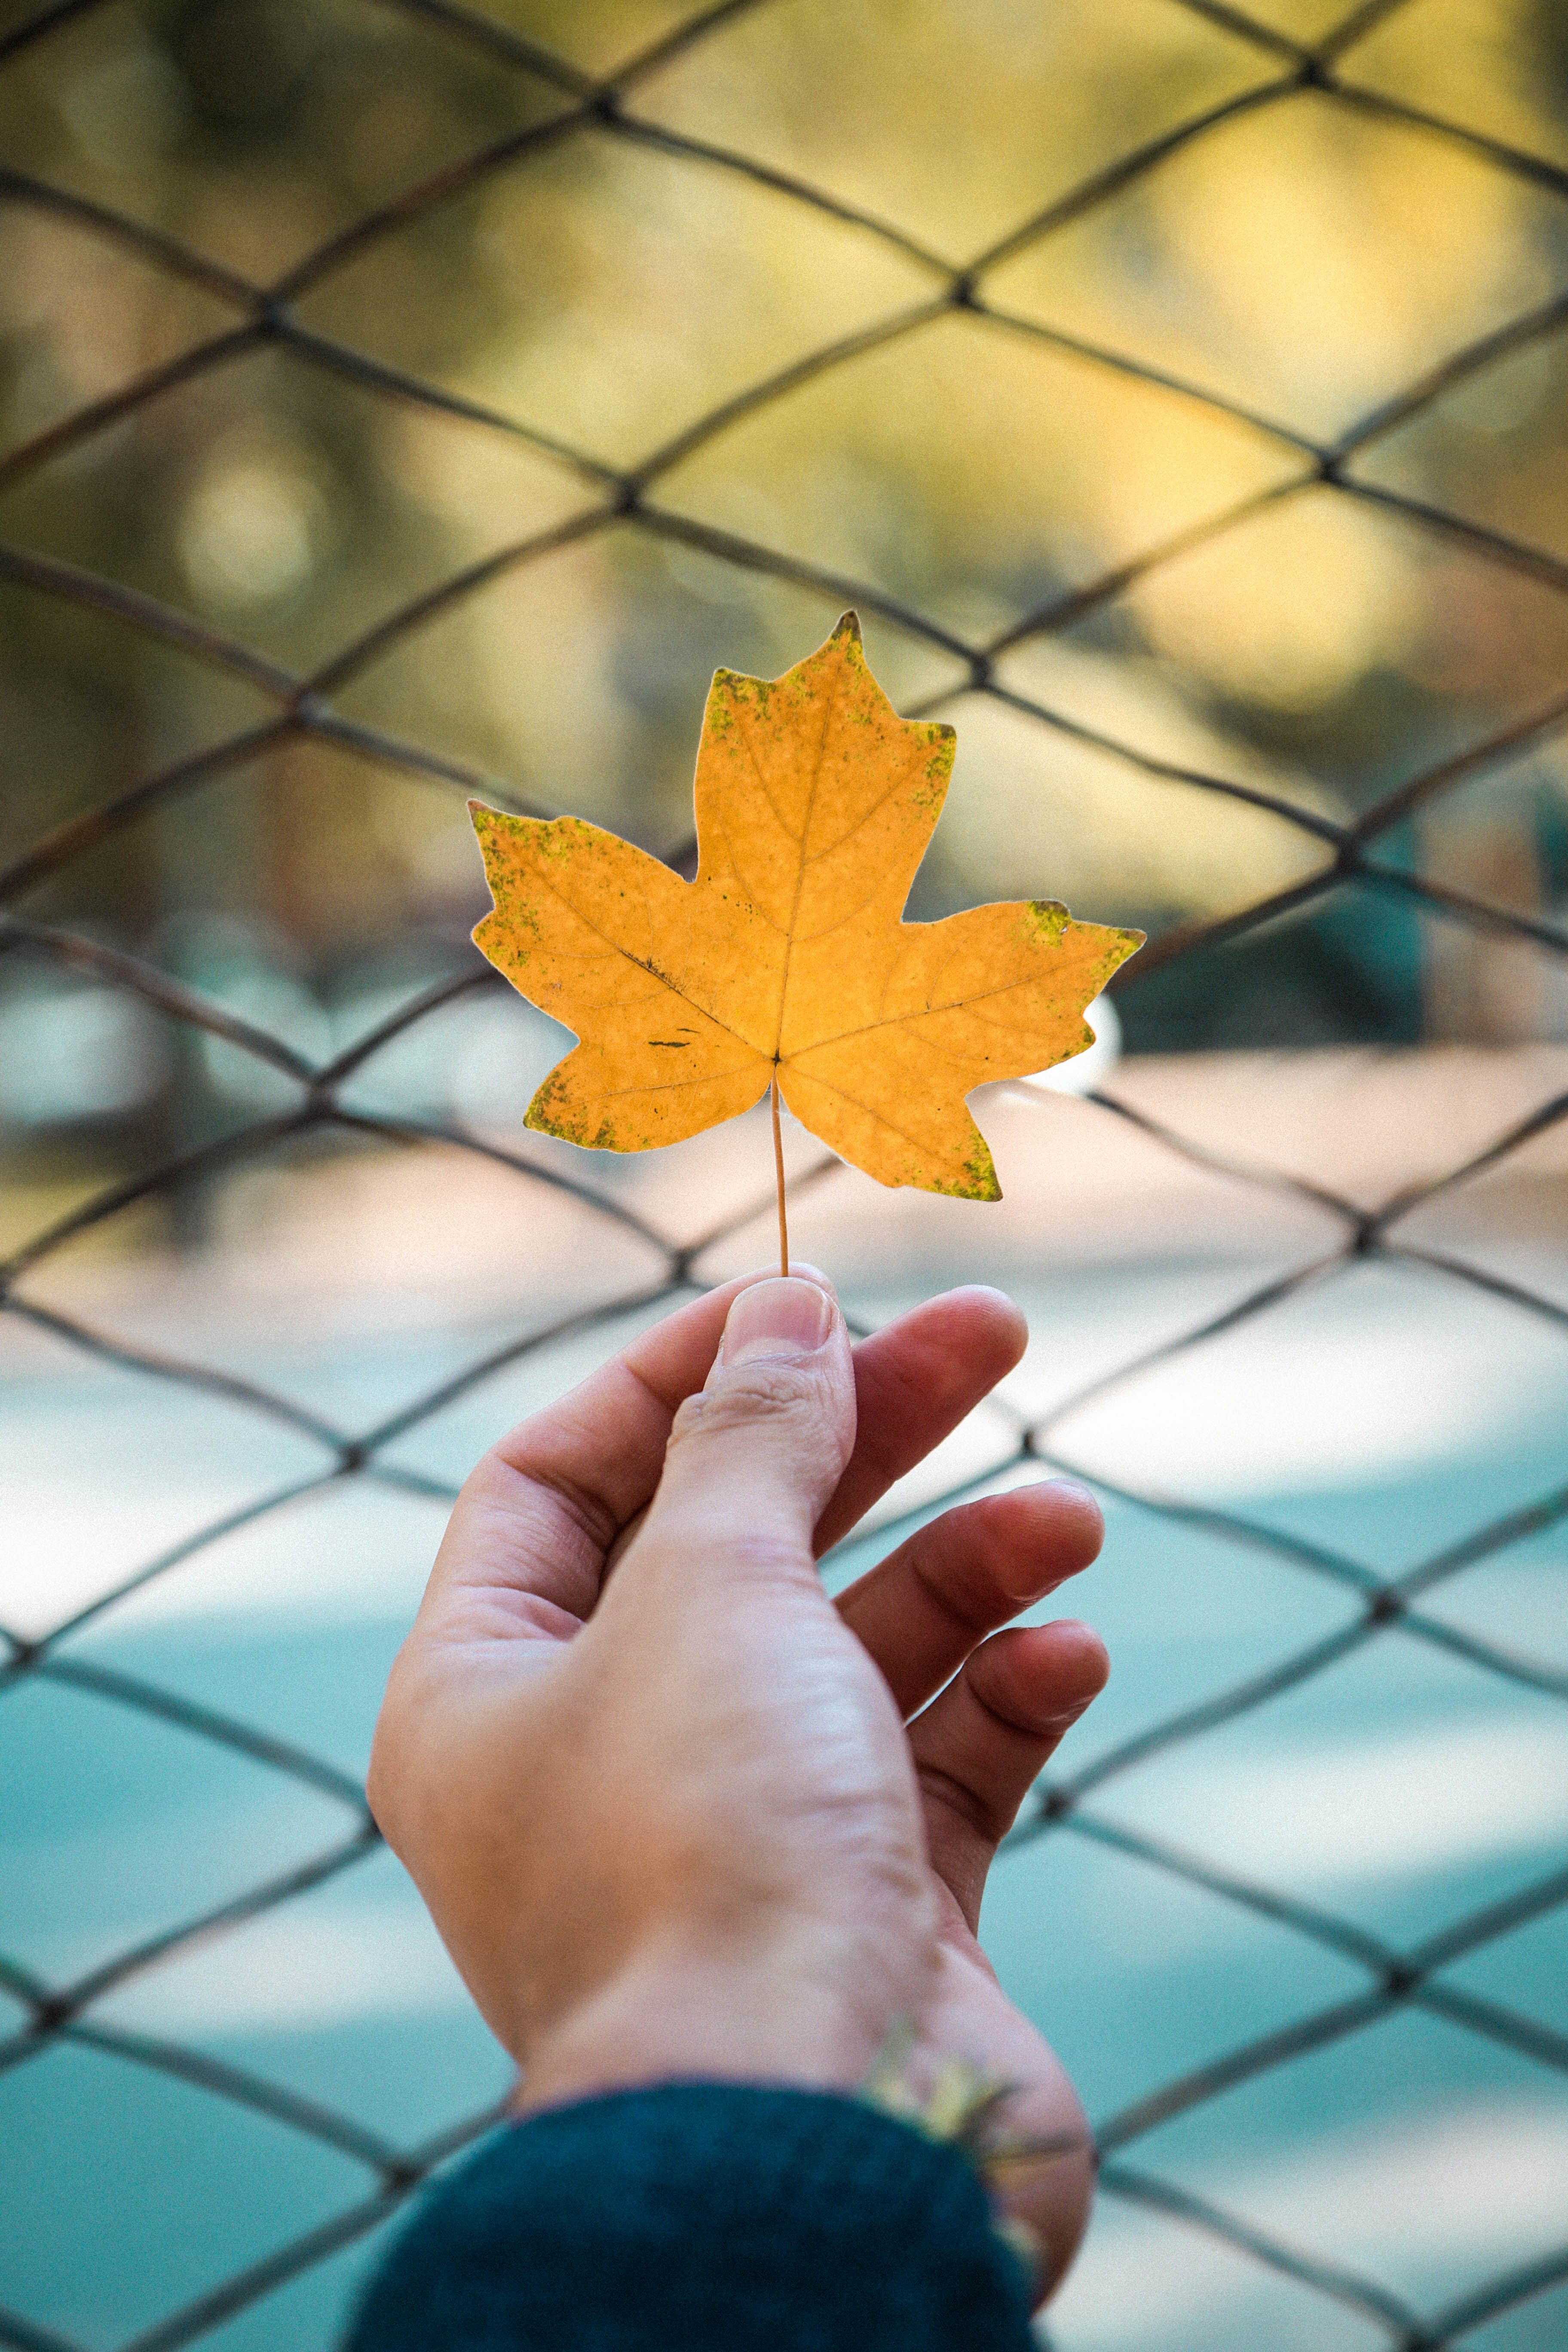 Person Holding a Maple Leaf